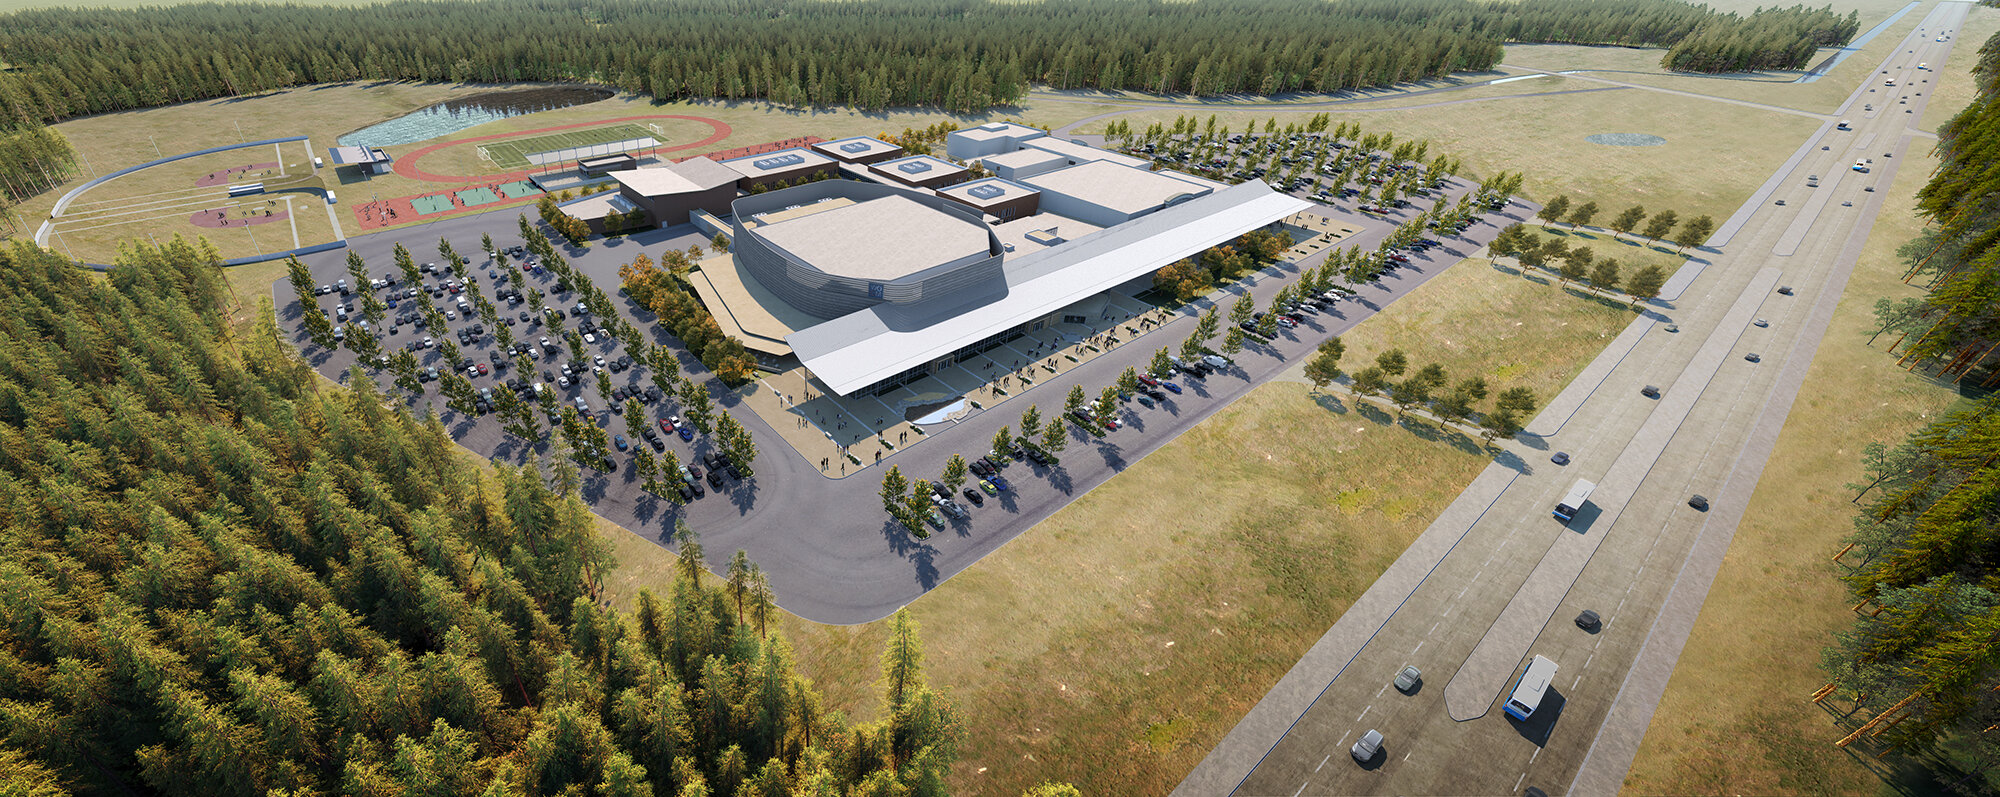 Aerial view of the new campus